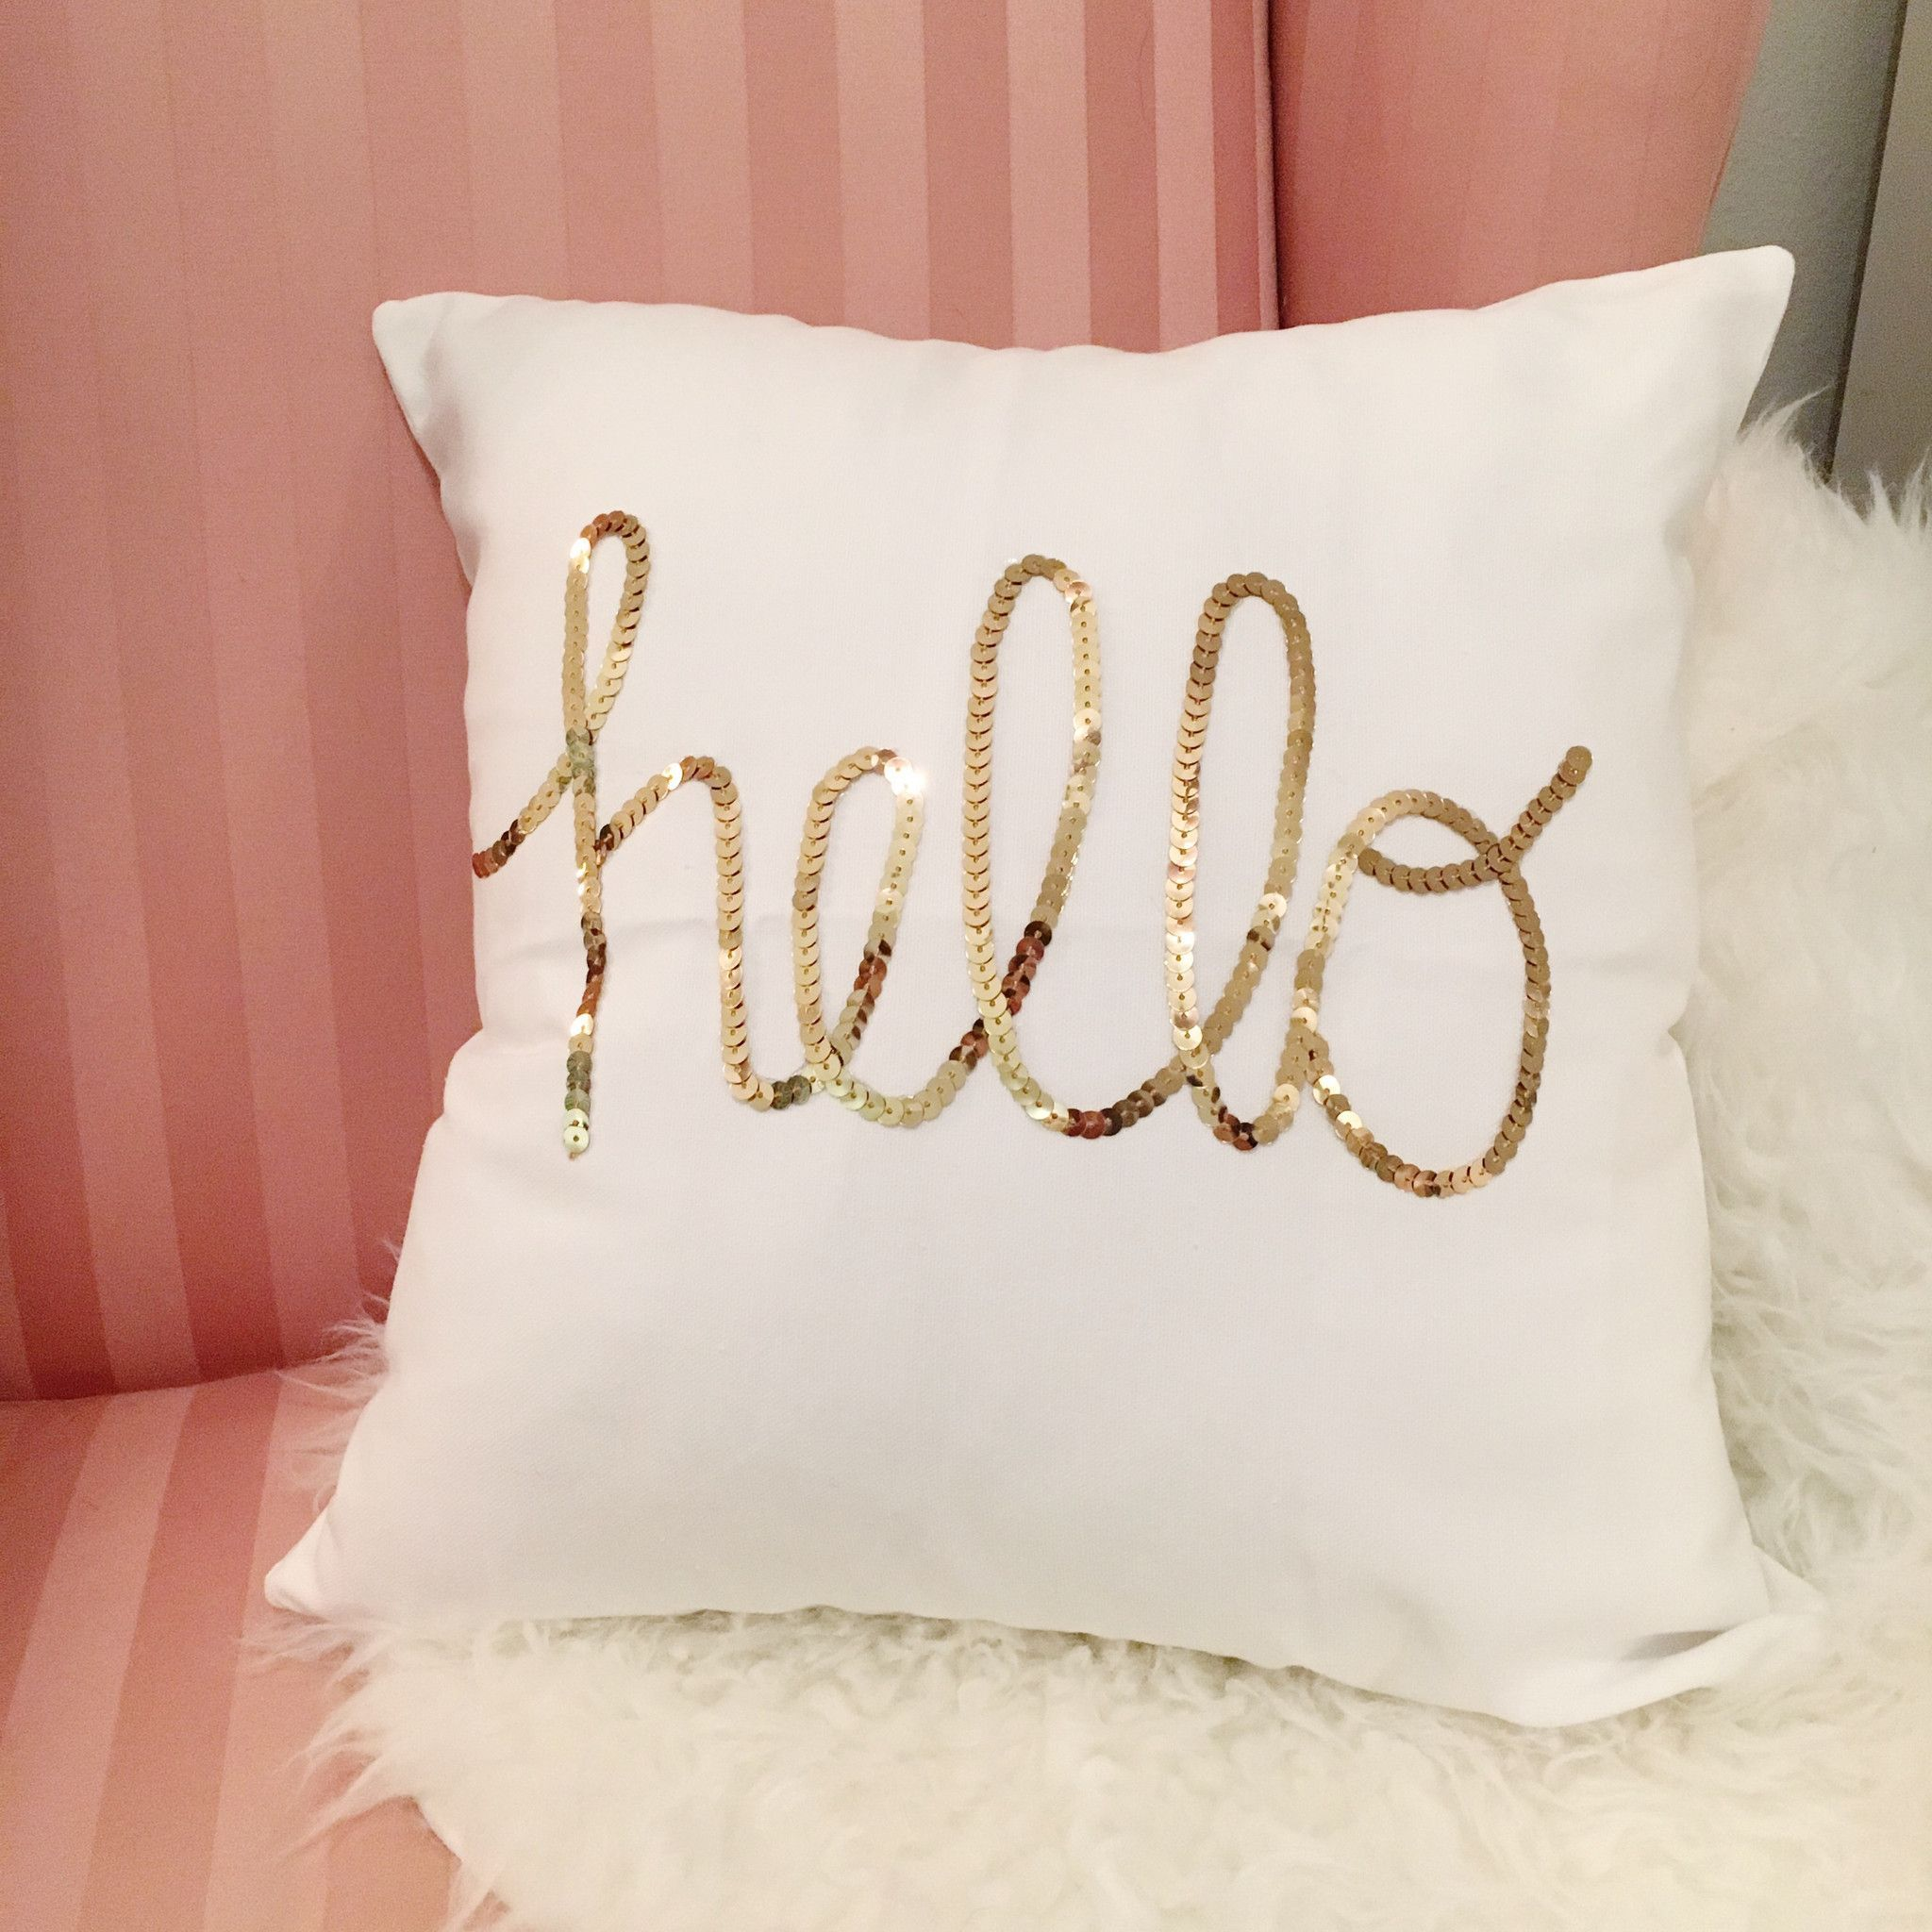 color products good stuff shifting much square mermaid gold so hollar sequin pillow